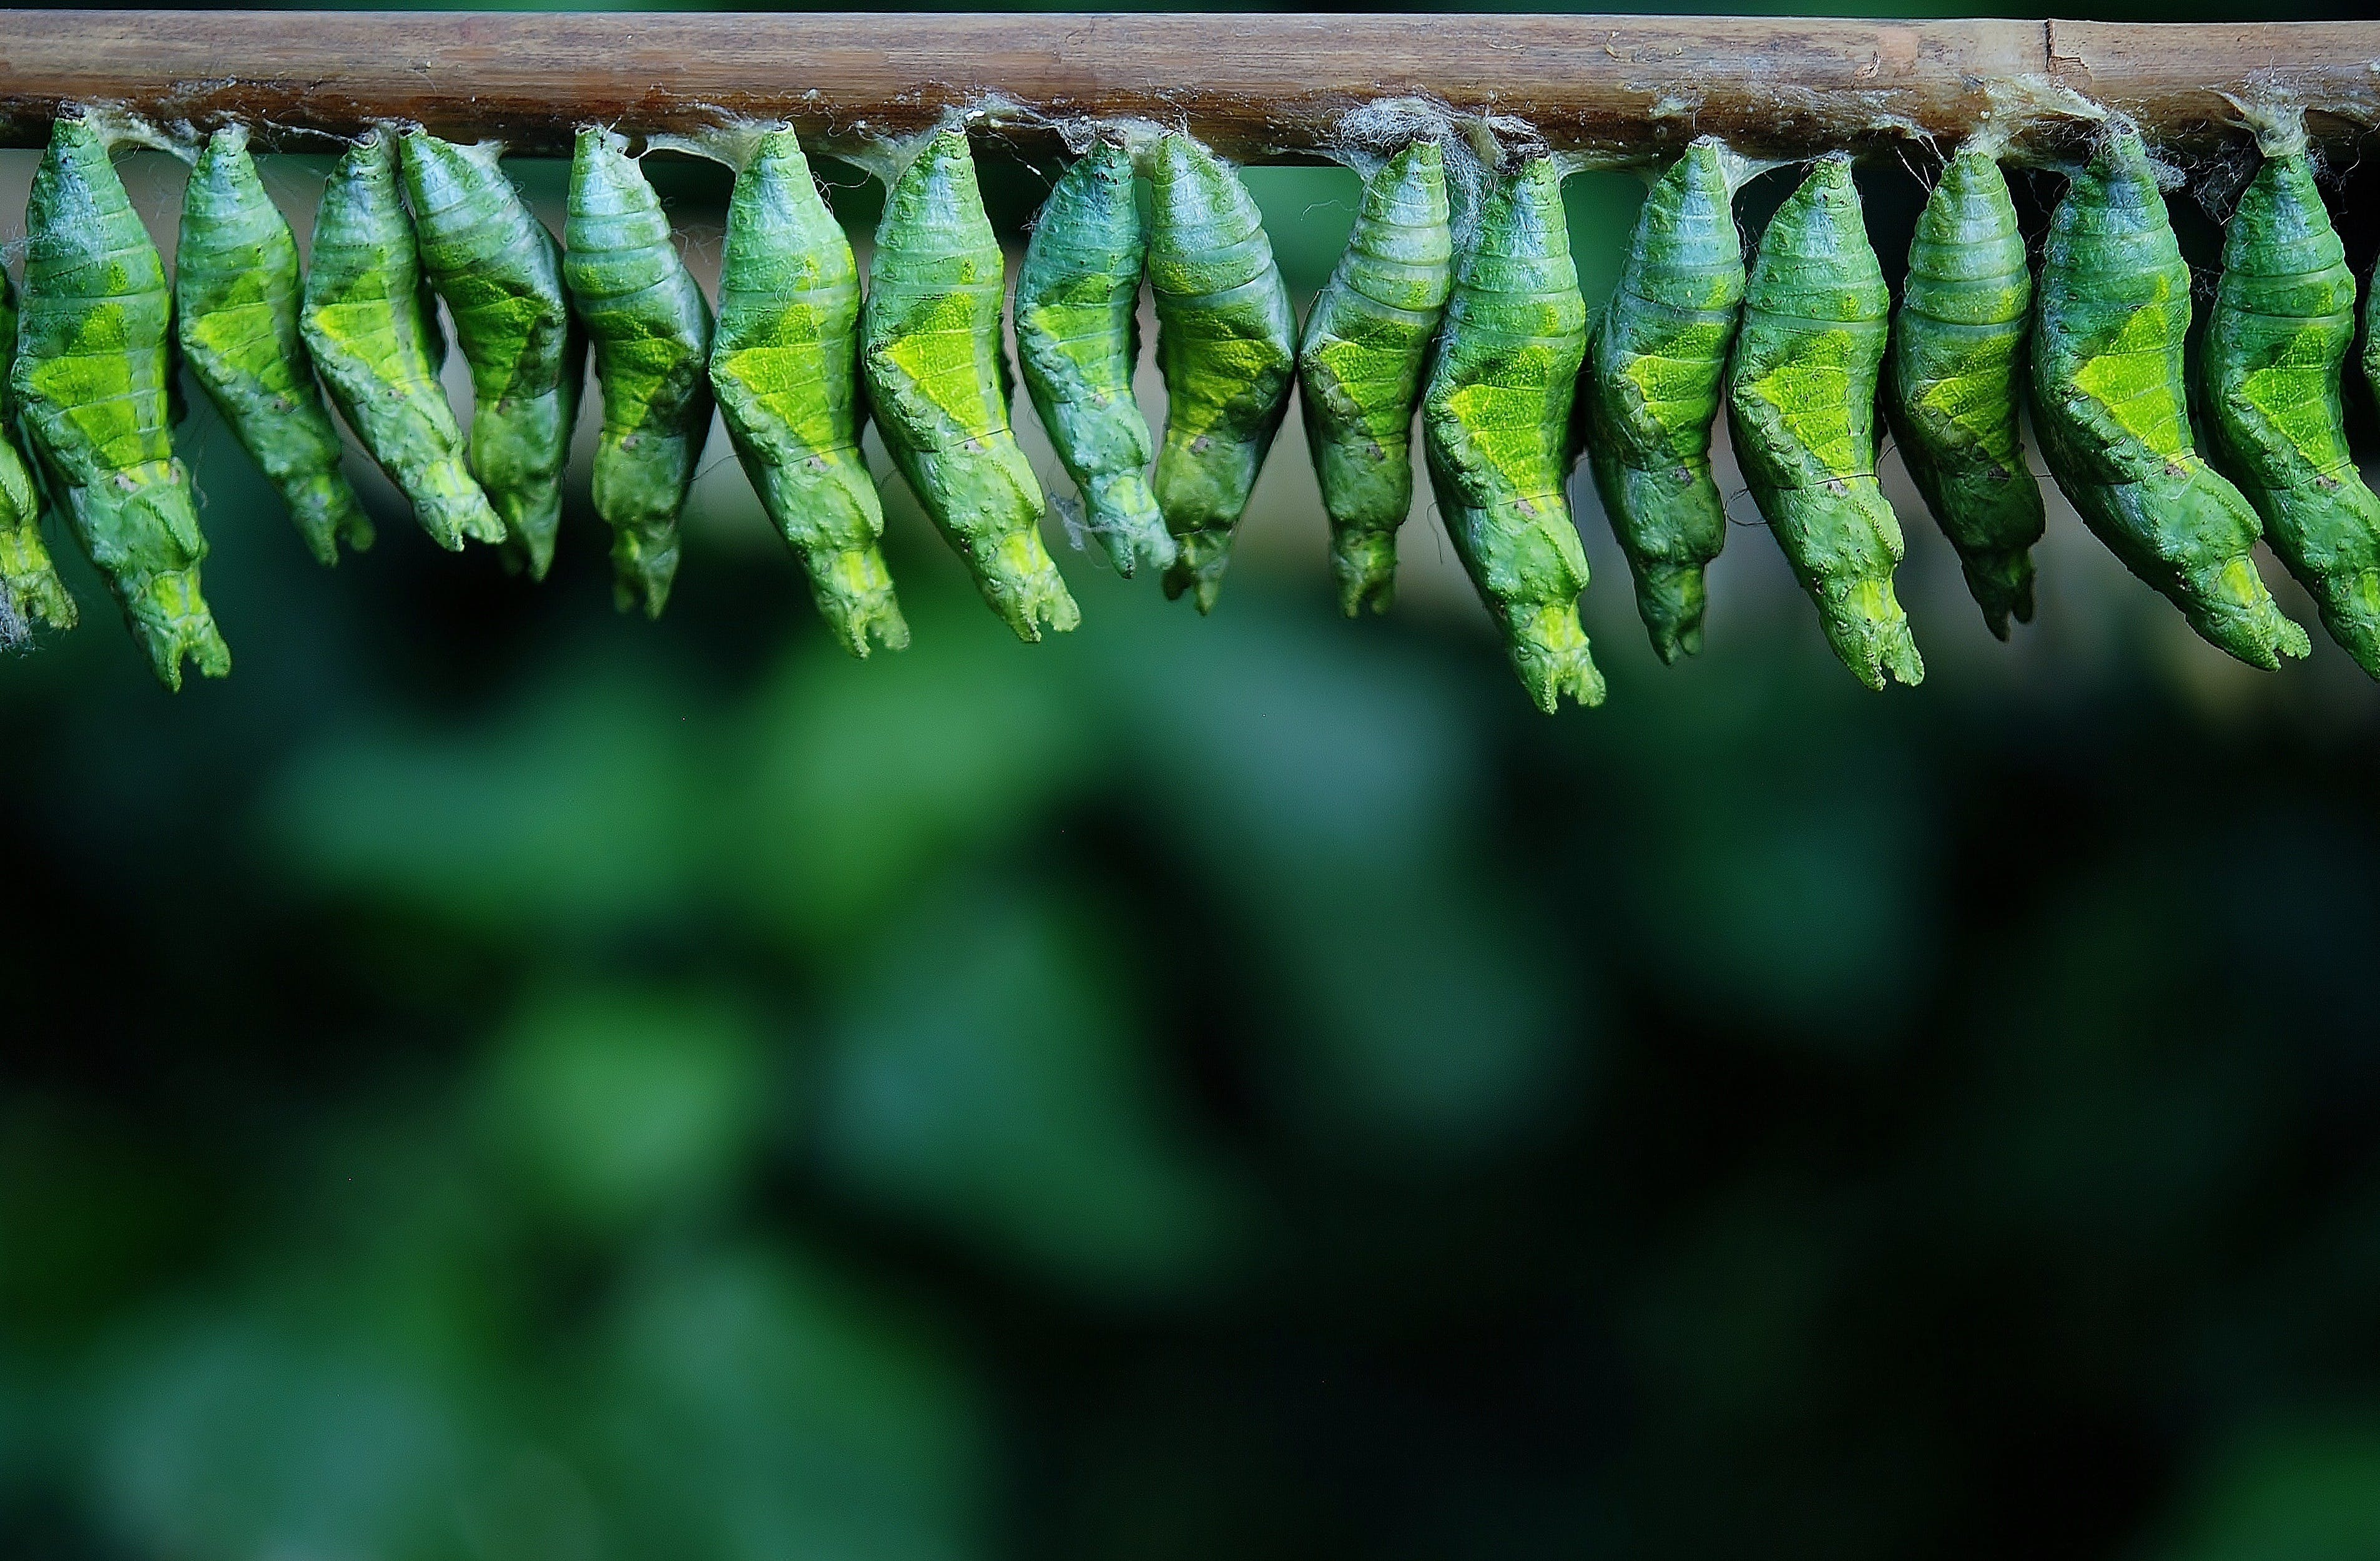 Green Cocoons on Tree Branch